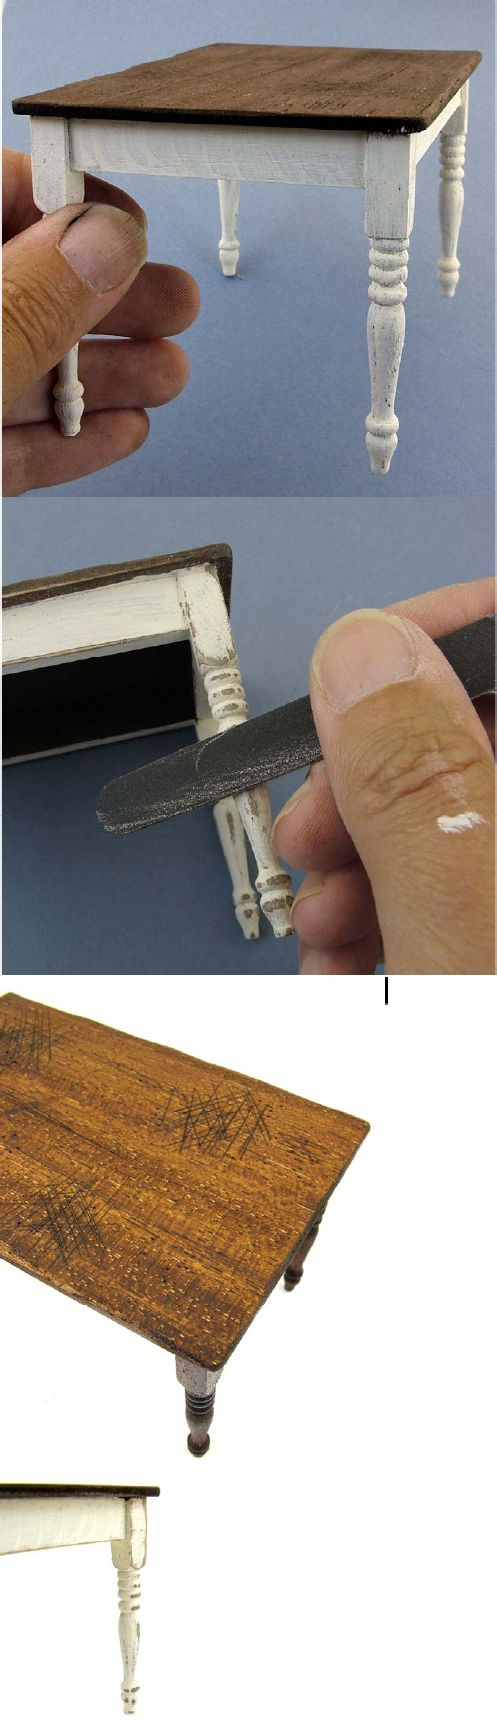 ideas about Miniature Furniture on Pinterest Dollhouse